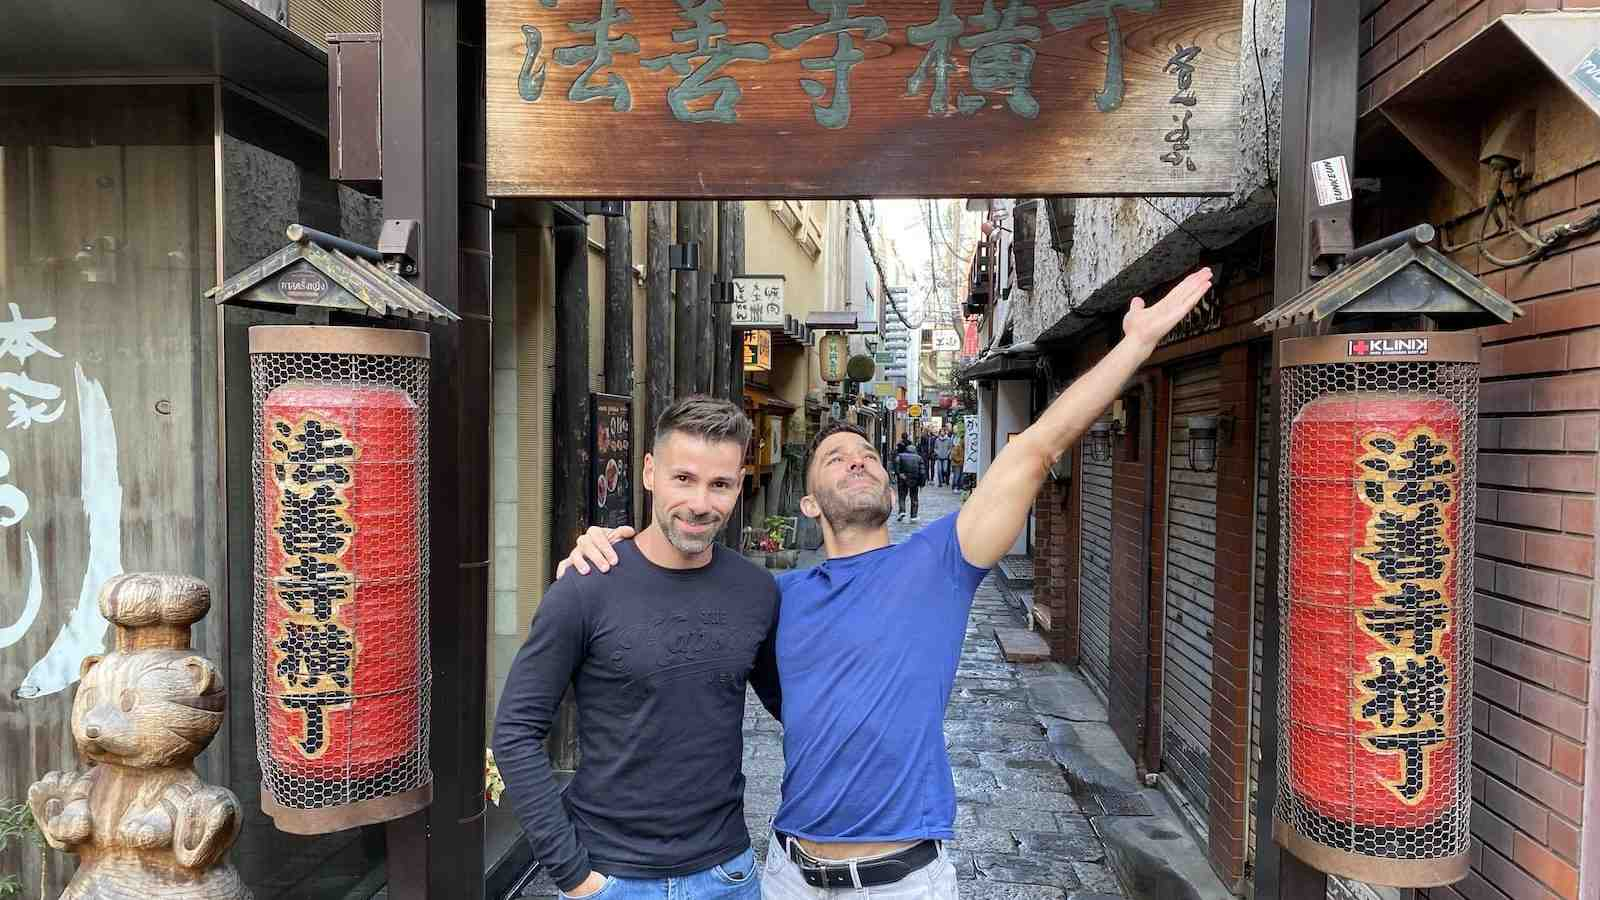 Doyoma is the gay neighbourhood of Osaka, with lots of fun bars, saunas and clubs